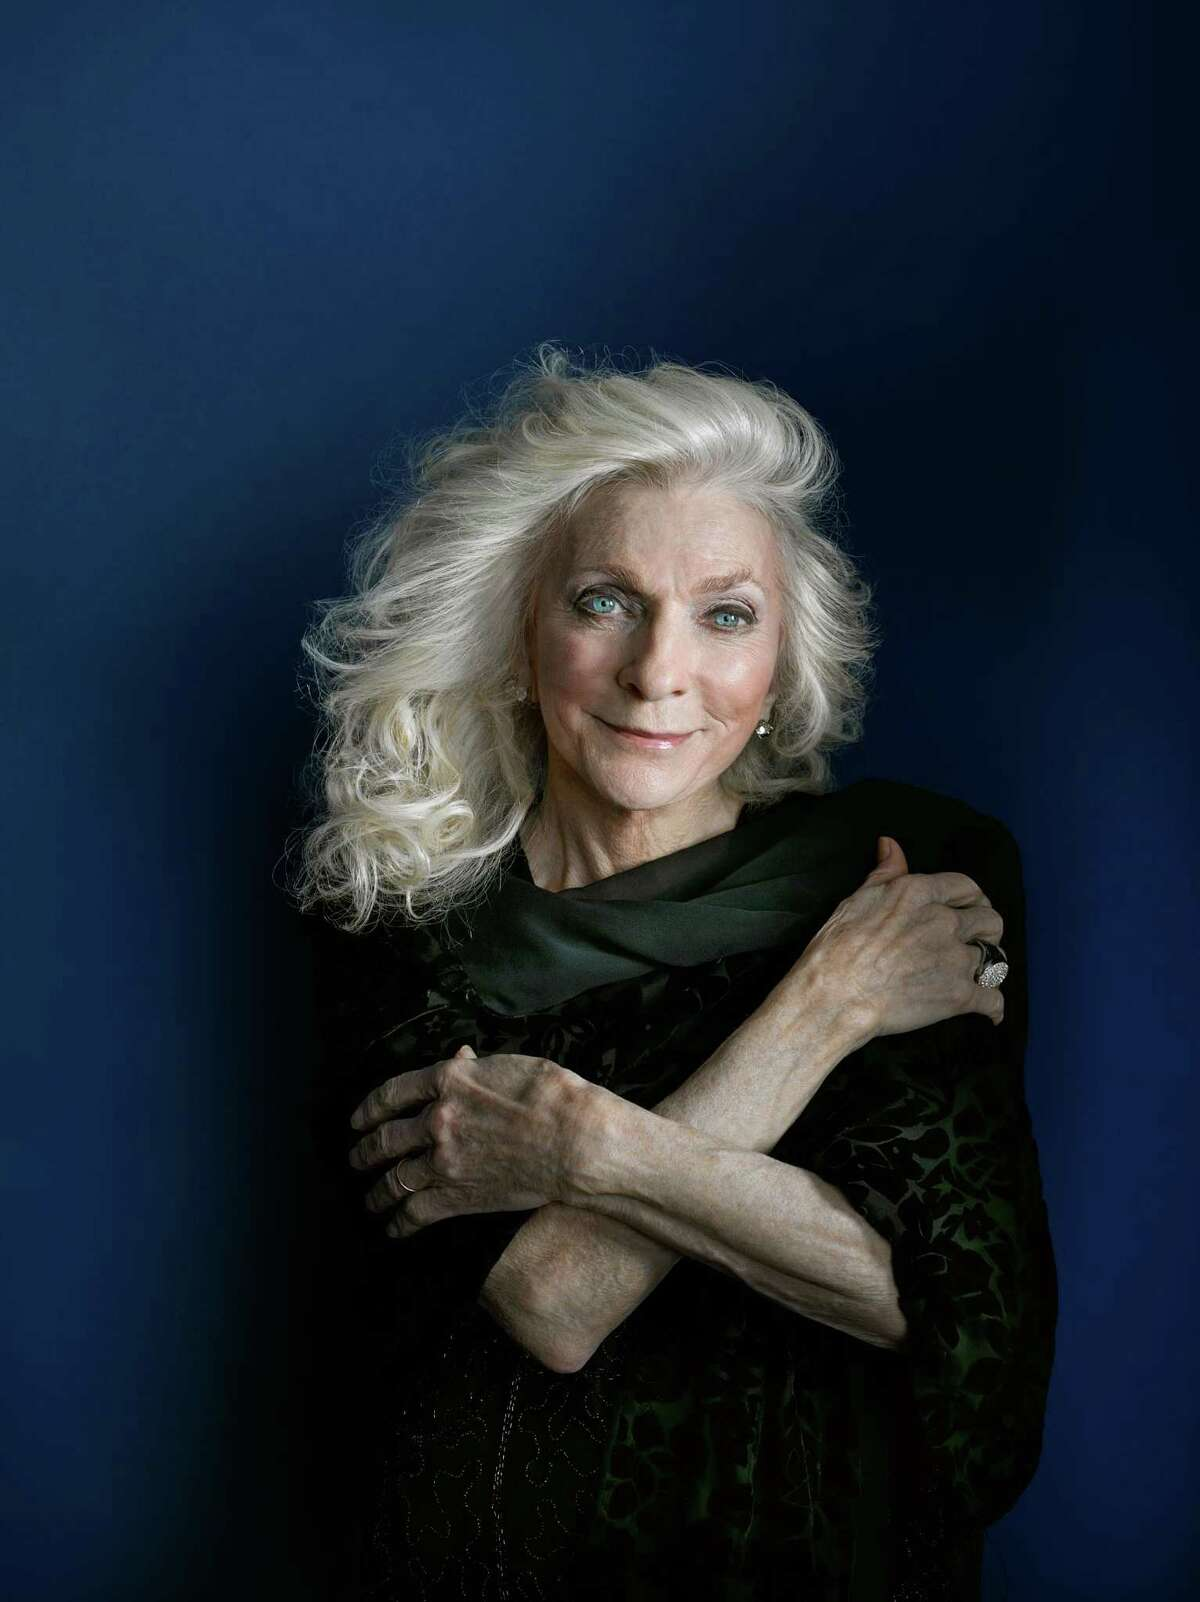 Judy Collins will perform on Dec. 4 and 5 at 7:30 p.m. at the Ridgefield Playhouse, 80 East Ridge Road, Ridgefield. Tickets are $58. For more information, visit ridgefieldplayhouse.org.